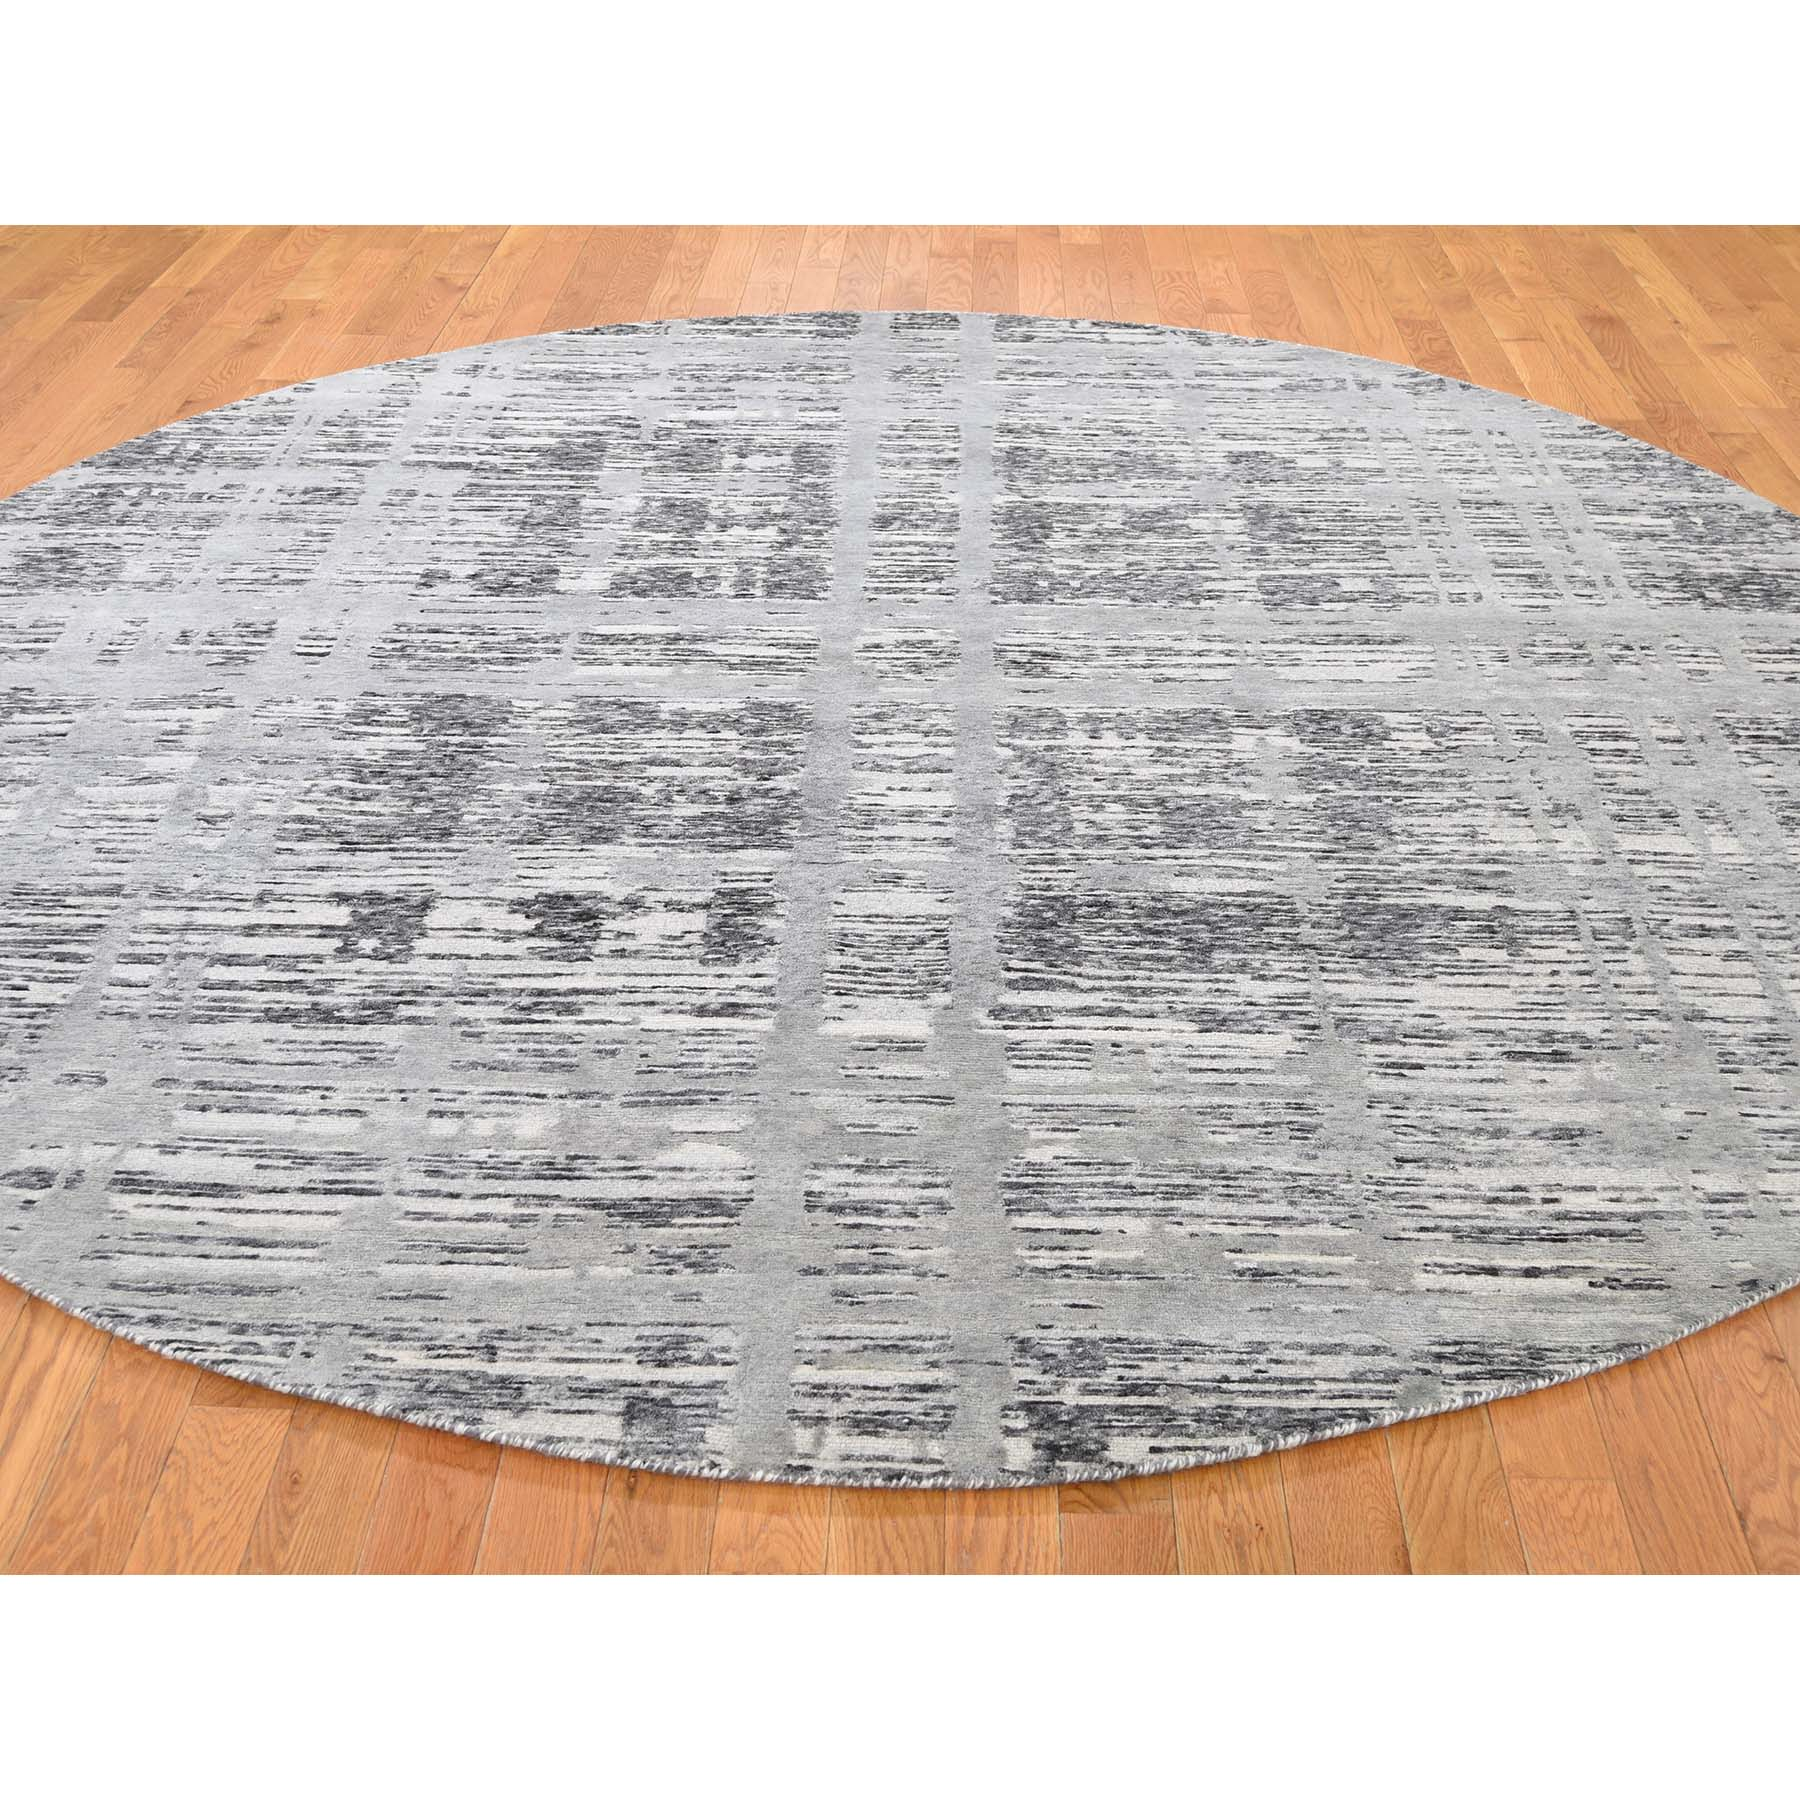 10-x10- Undyed Natural Wool Hand Spun Yarn Oriental Hand-Knotted Rug